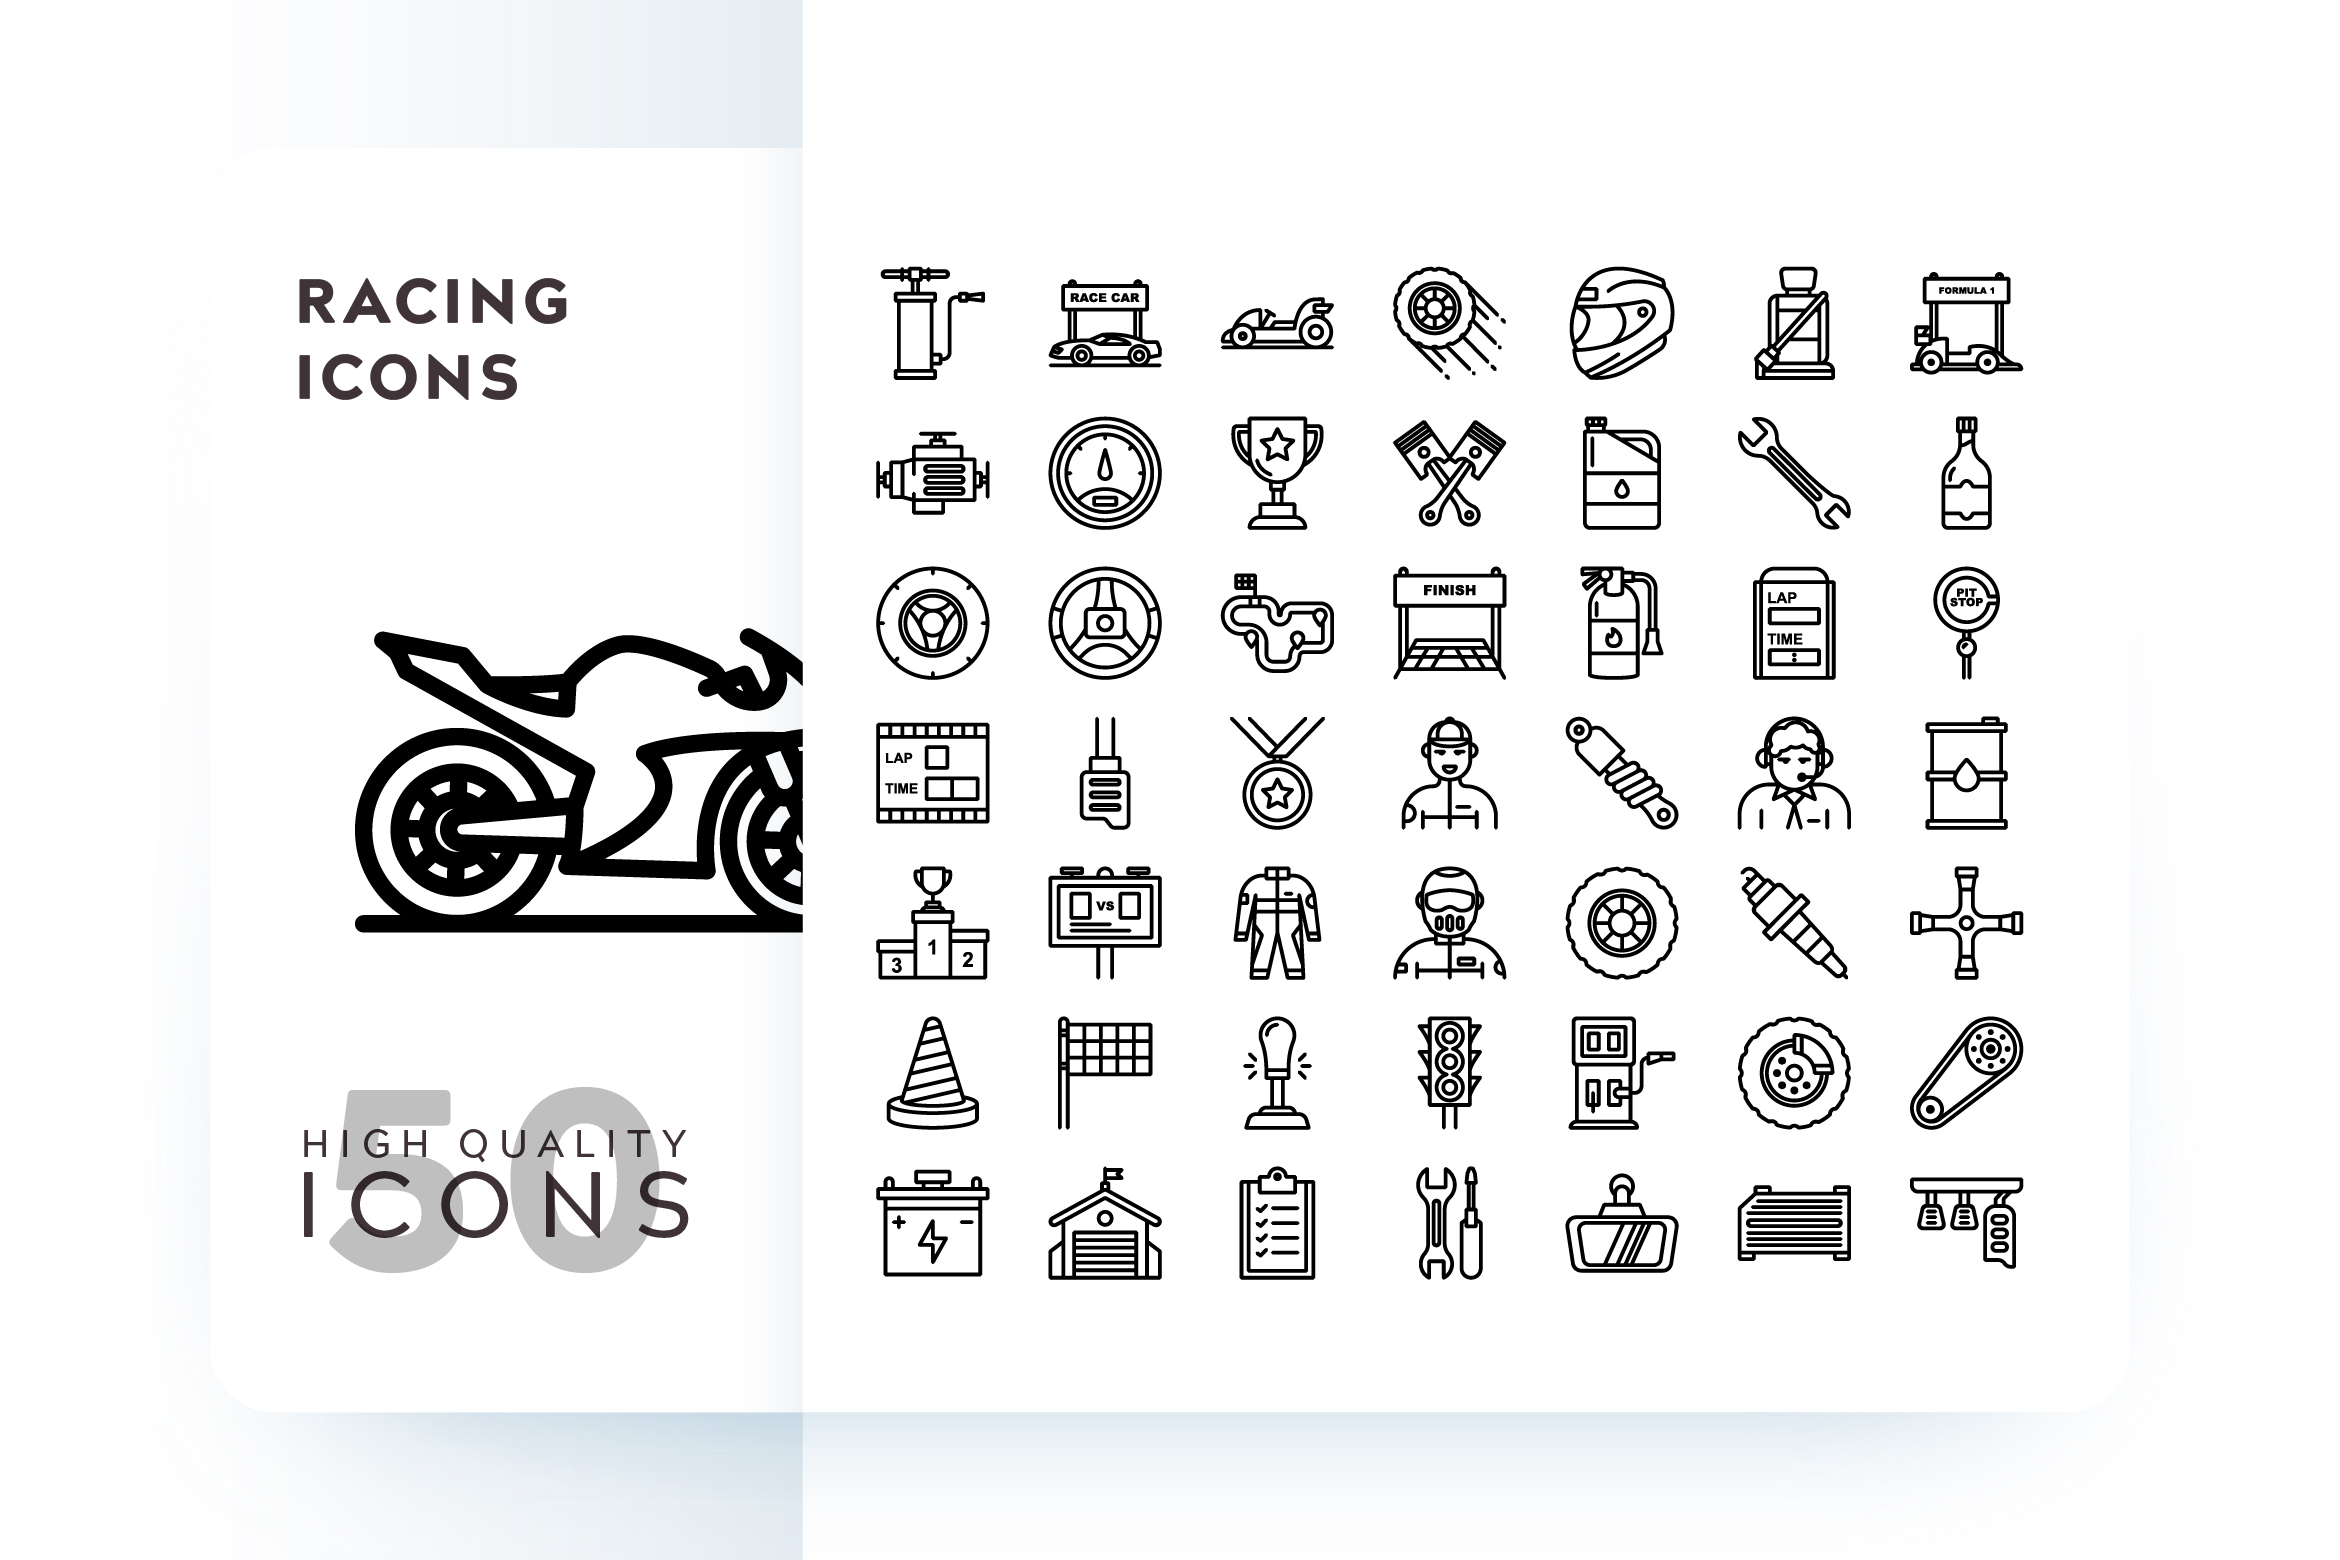 Download Free Racing Icon Graphic By Goodware Std Creative Fabrica for Cricut Explore, Silhouette and other cutting machines.